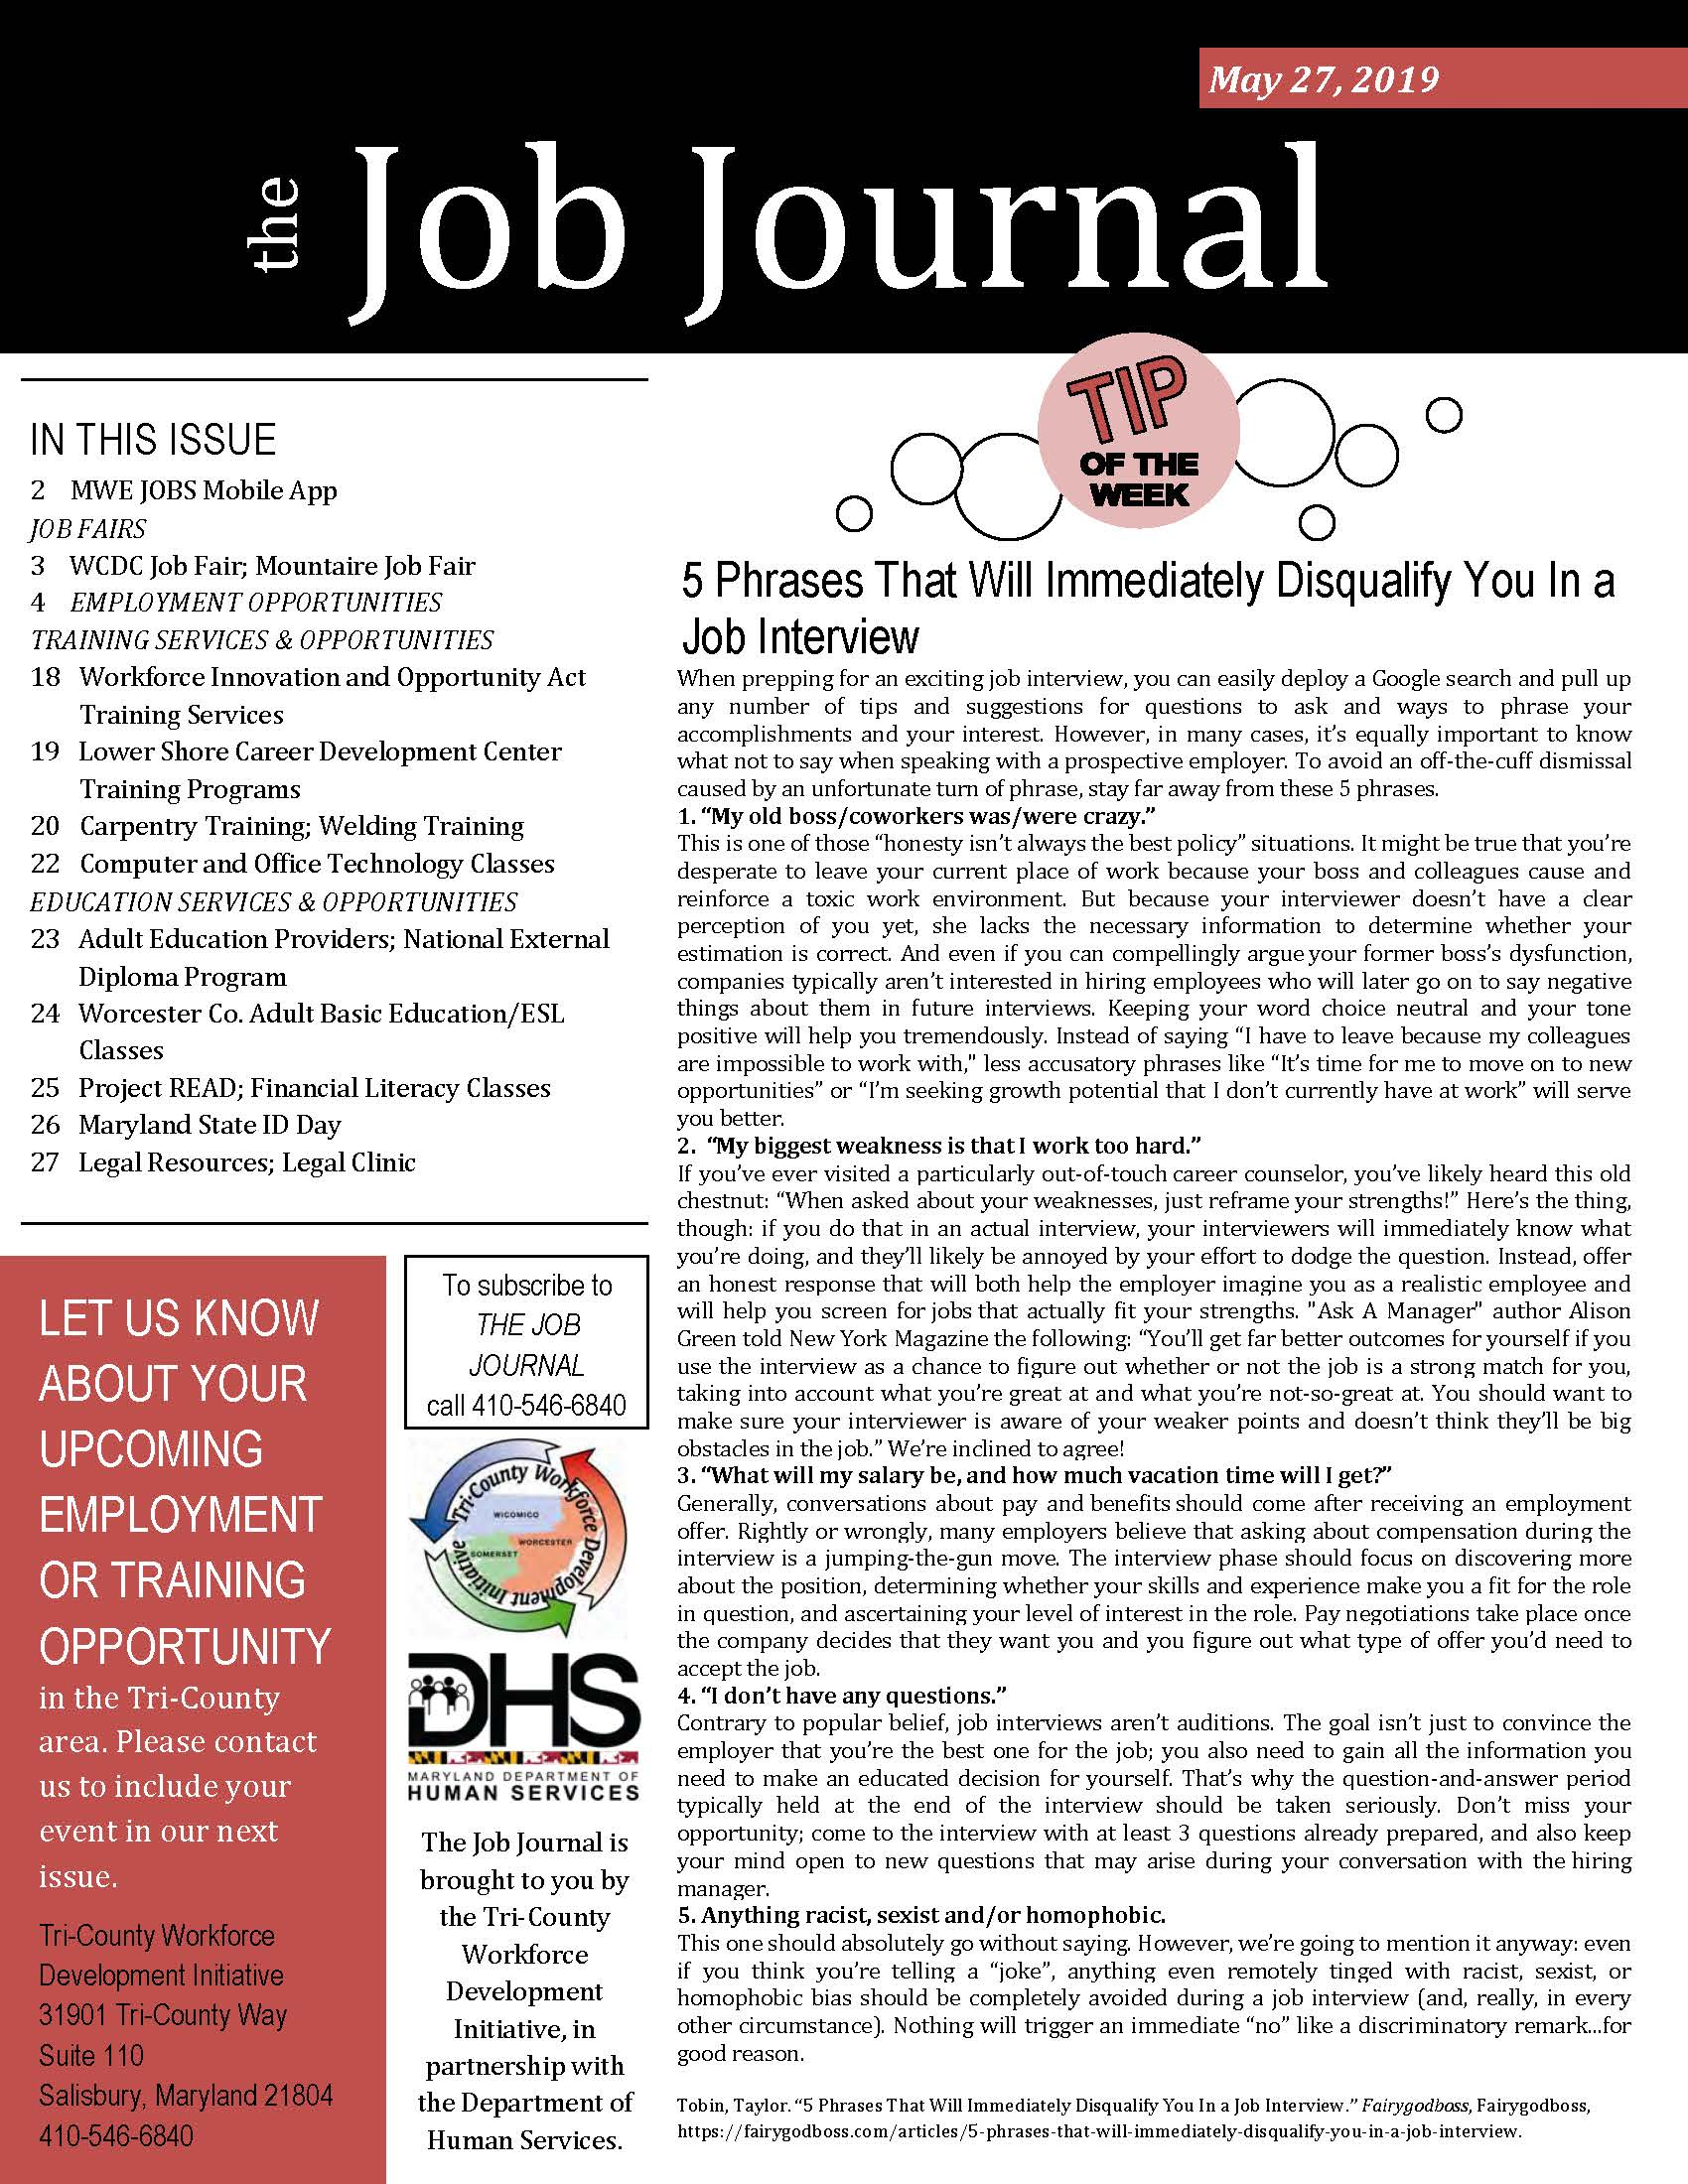 Cover page of The Job Journal for 05.27.2019